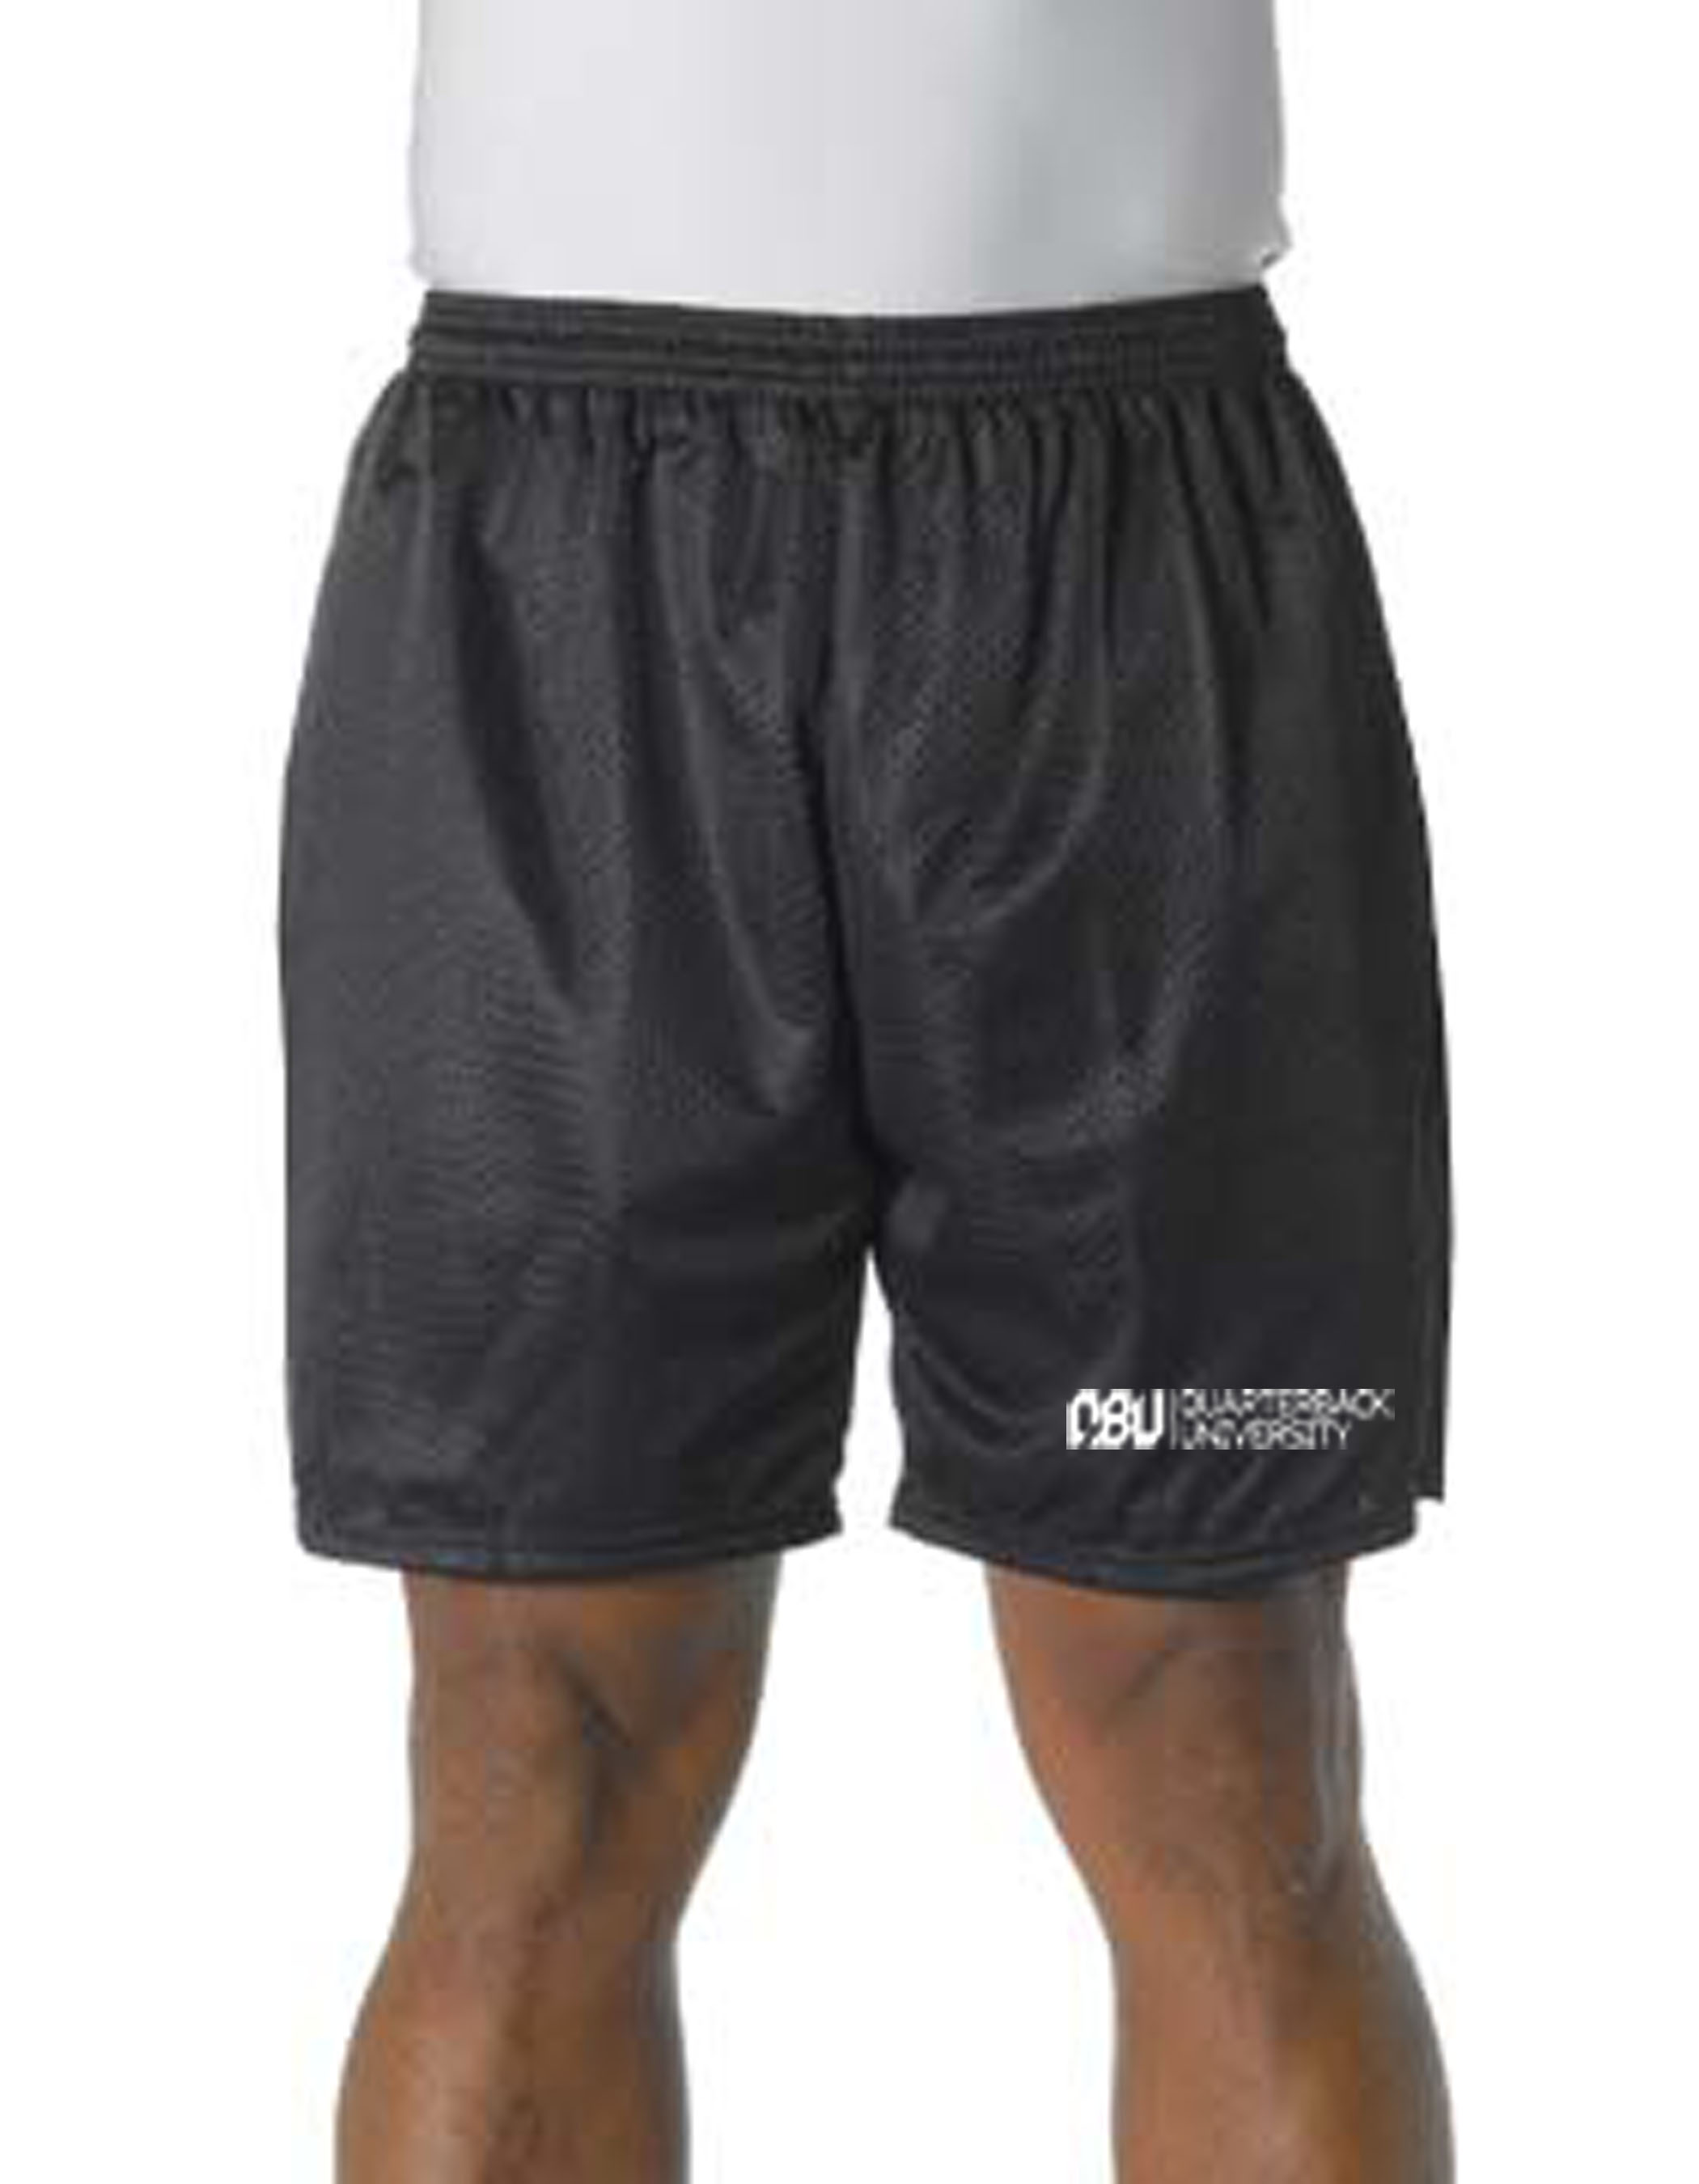 Quarterback University Shorts Black